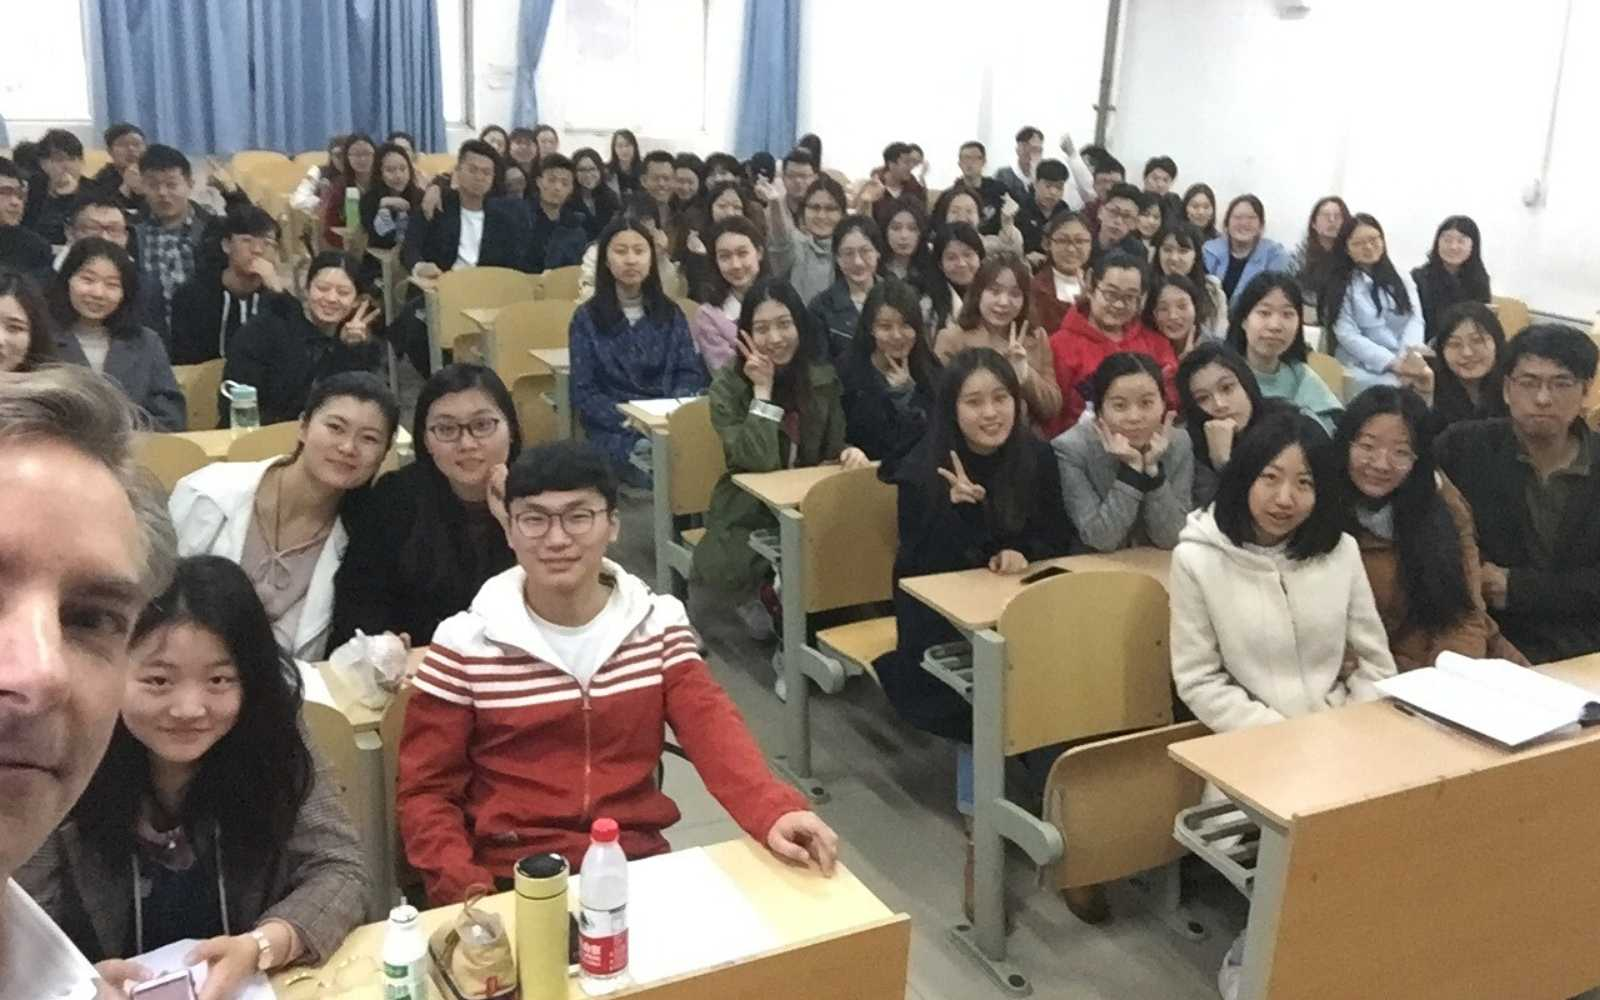 Chineses students in class. Difference between America and China.